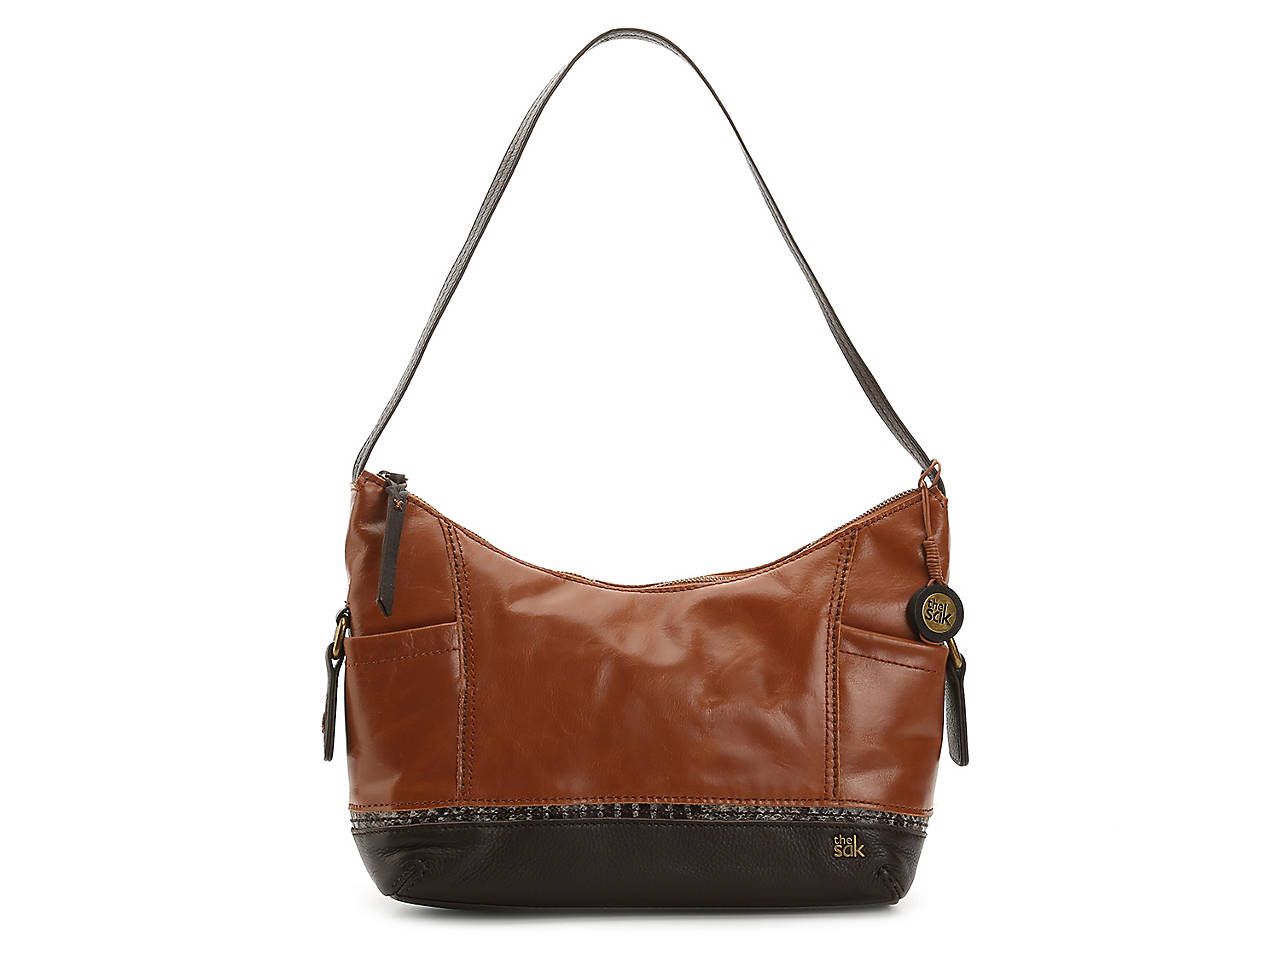 6ed55fed22 The Sak Kendra Leather Shoulder Bag Women s Handbags   Accessories